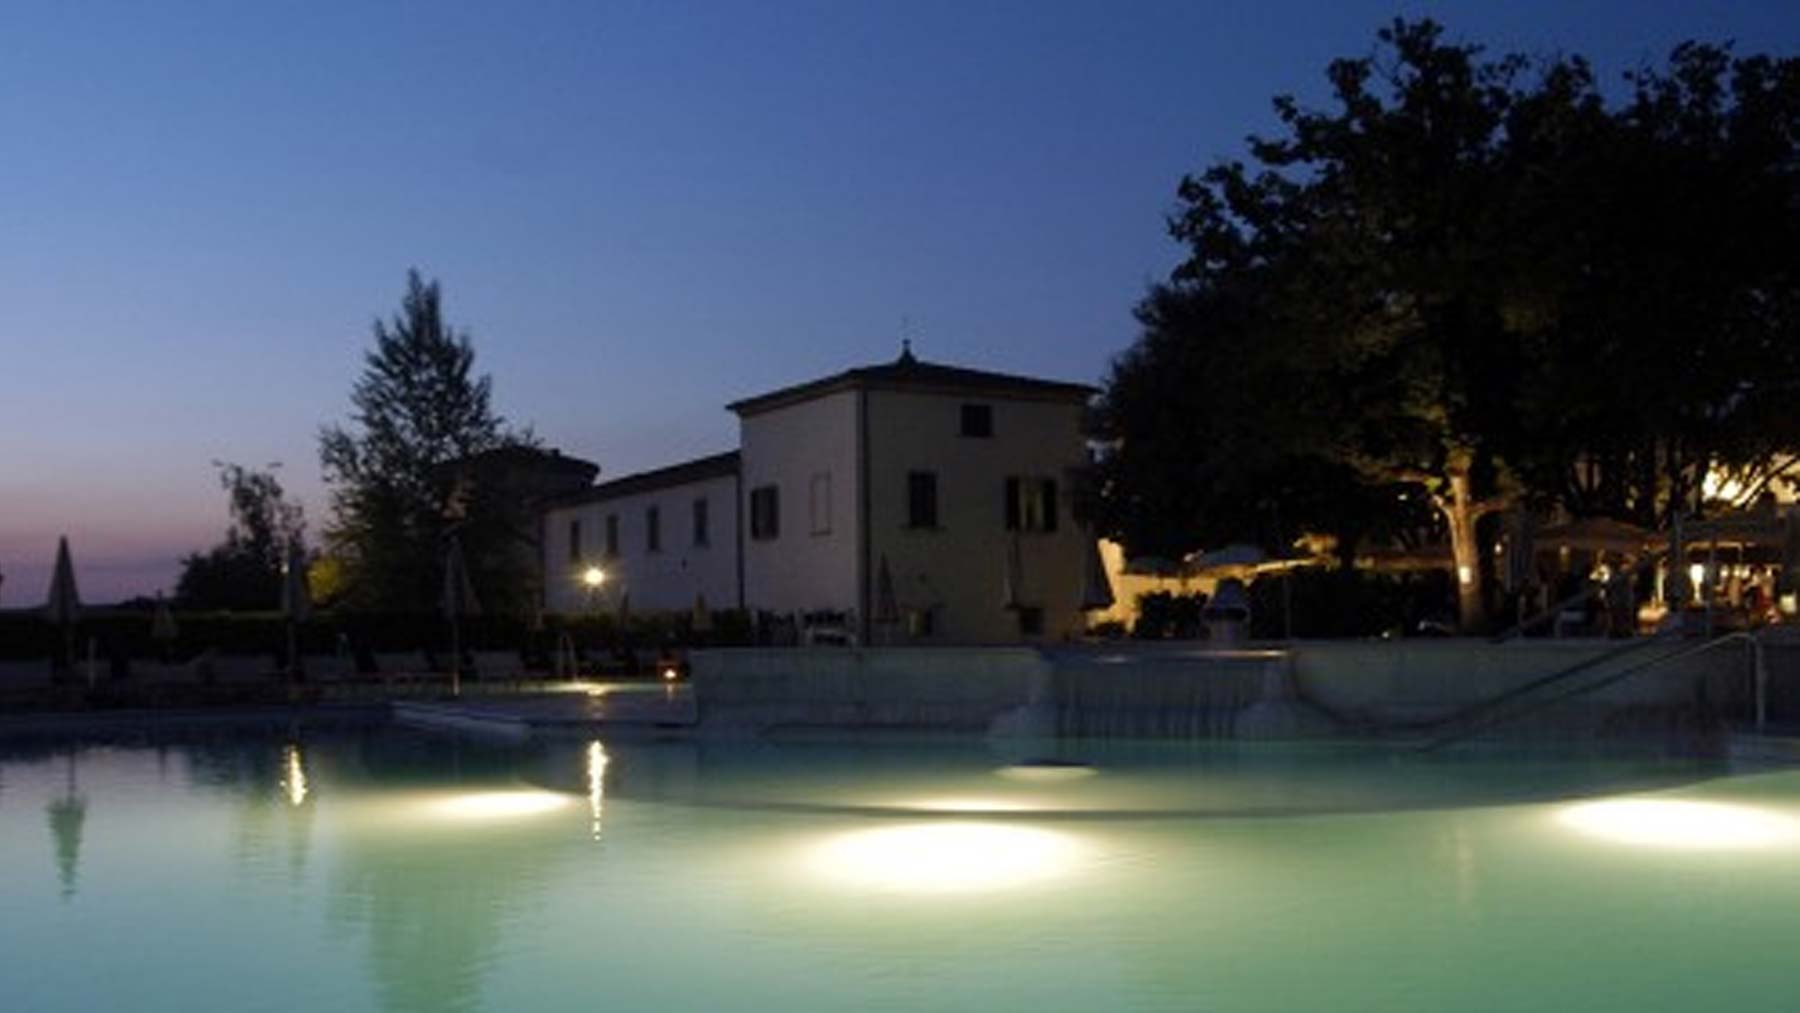 Farmhouse near the Spa and natural spring in Rapolano Terme